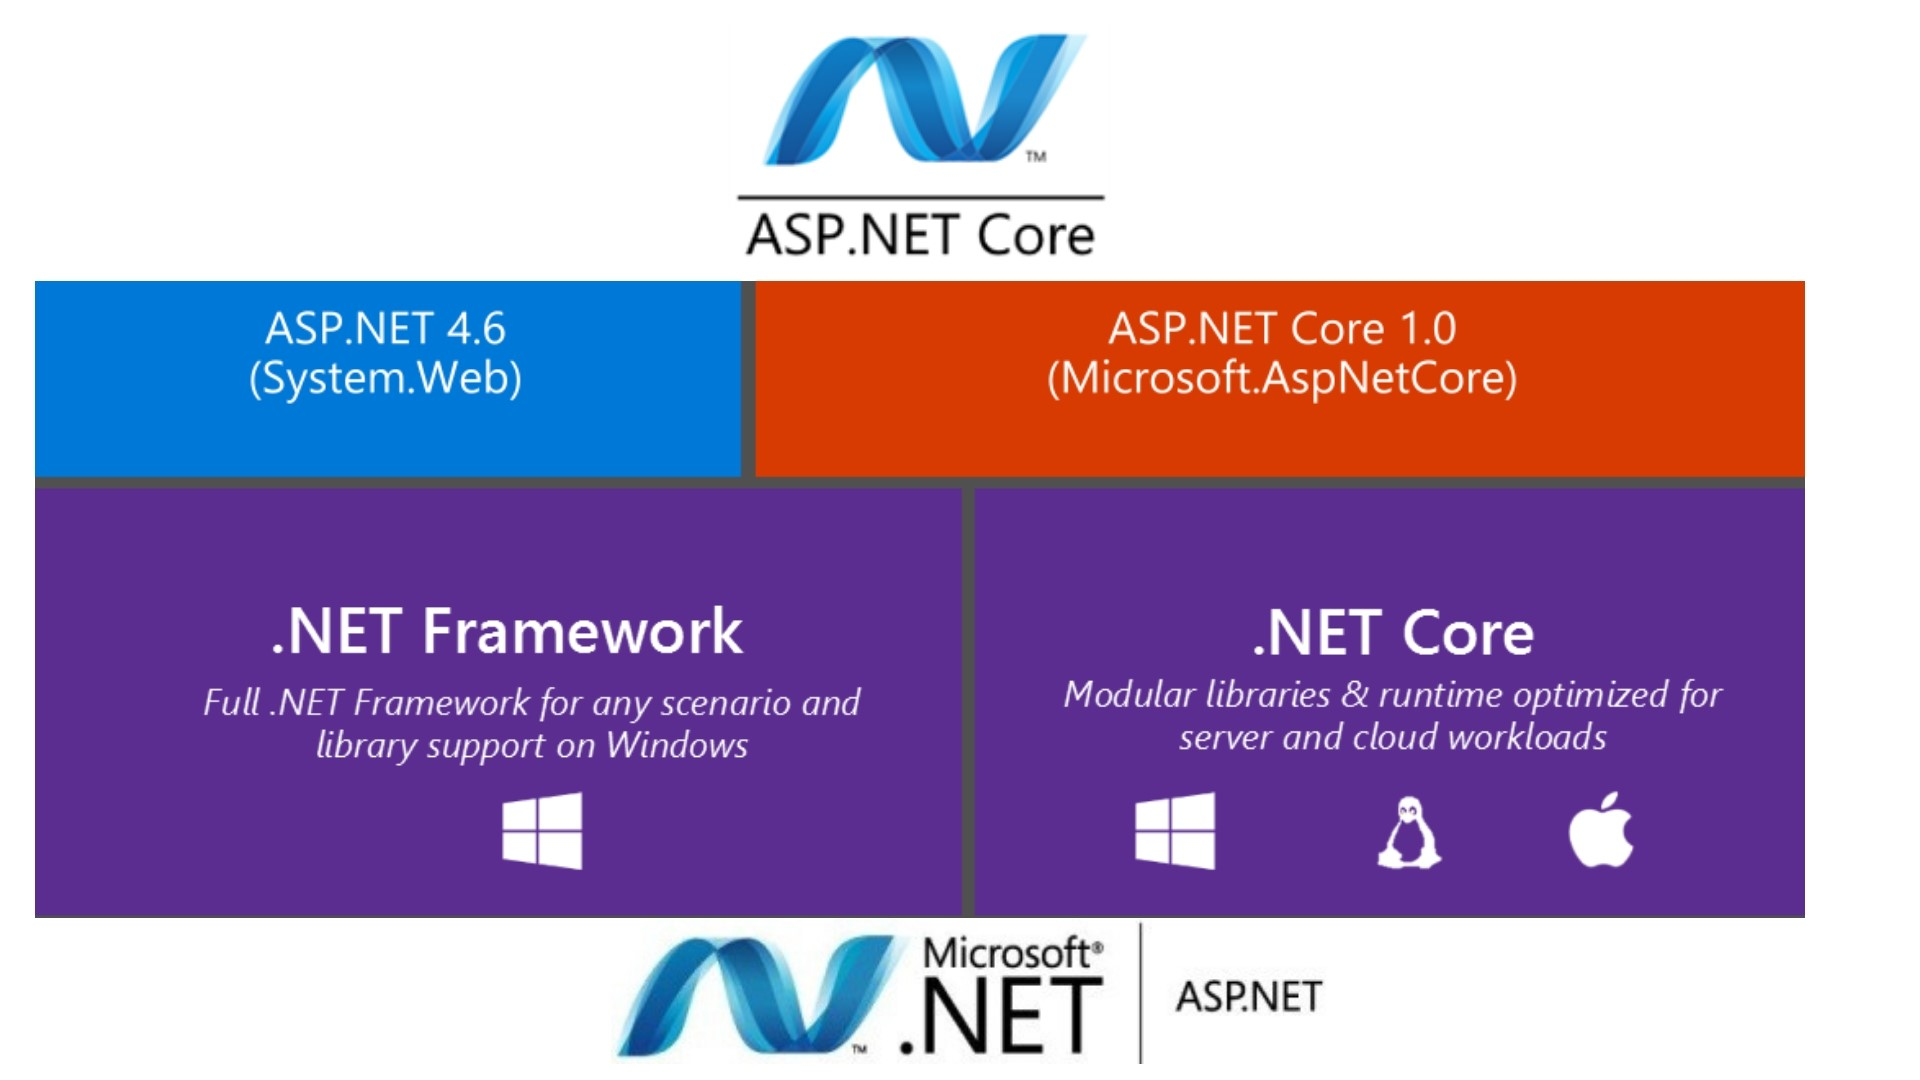 7 Reasons To Choose ASP.NET Core